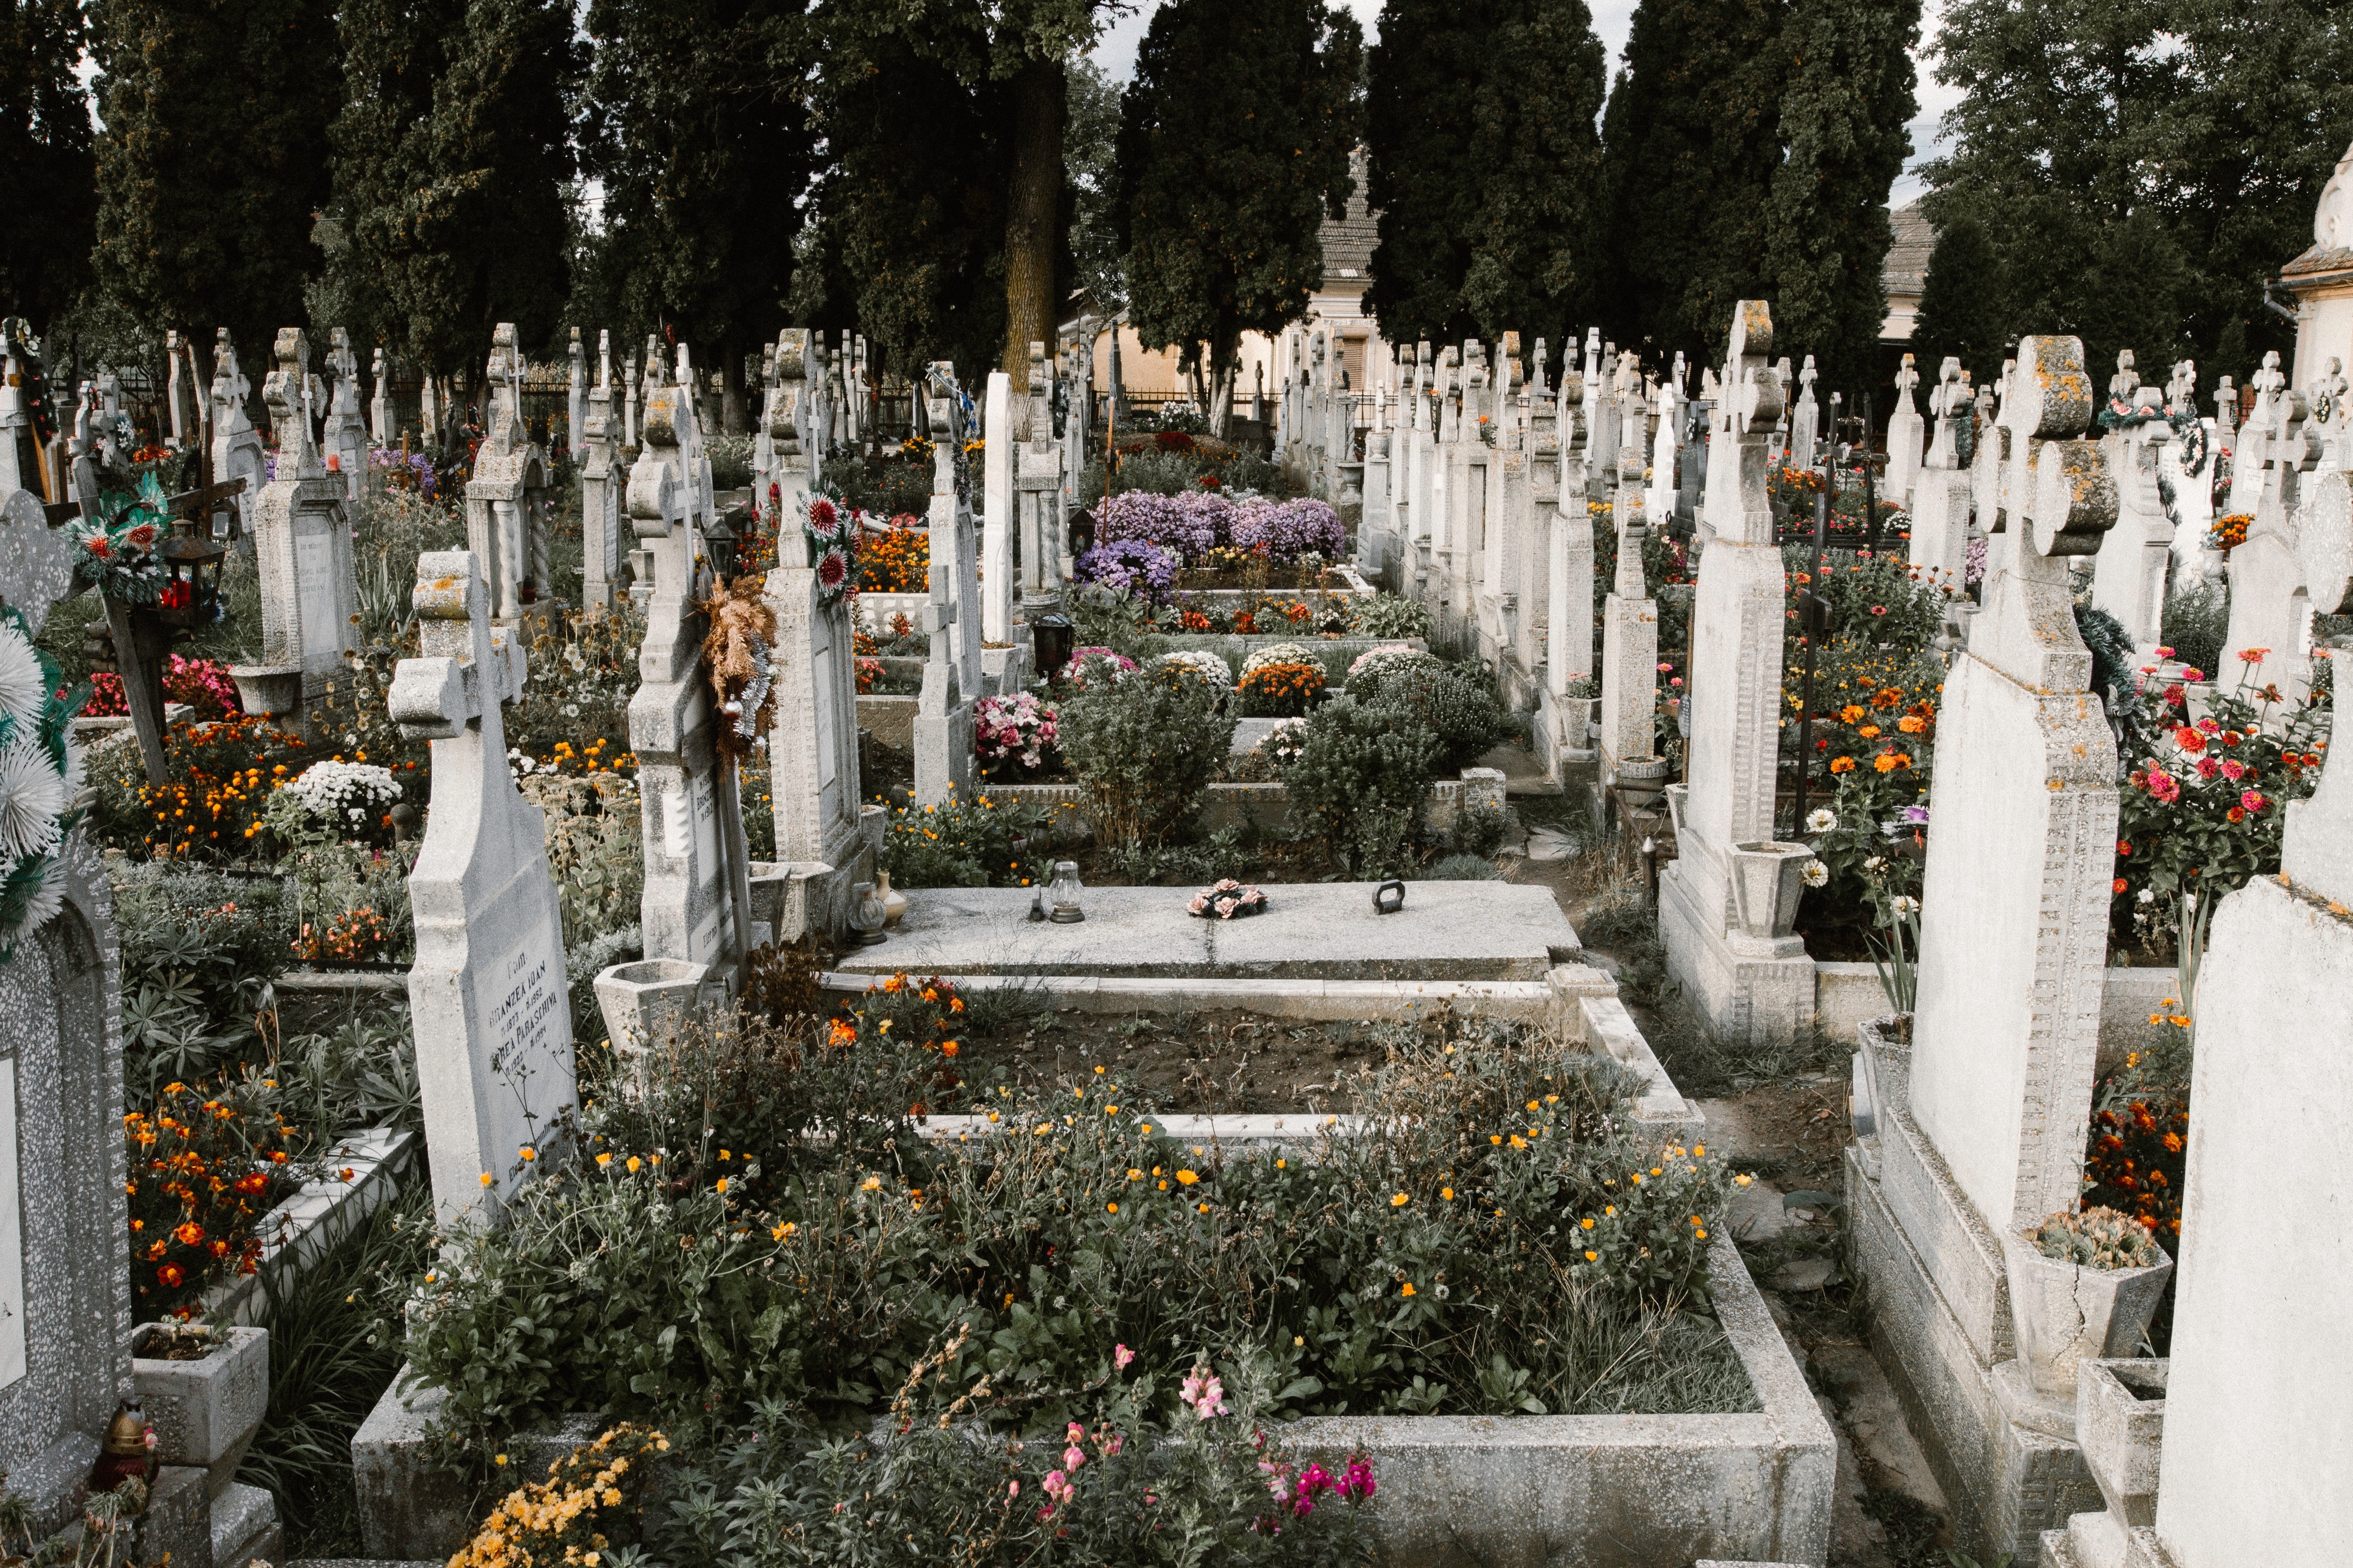 Cemetery with rows of headstones